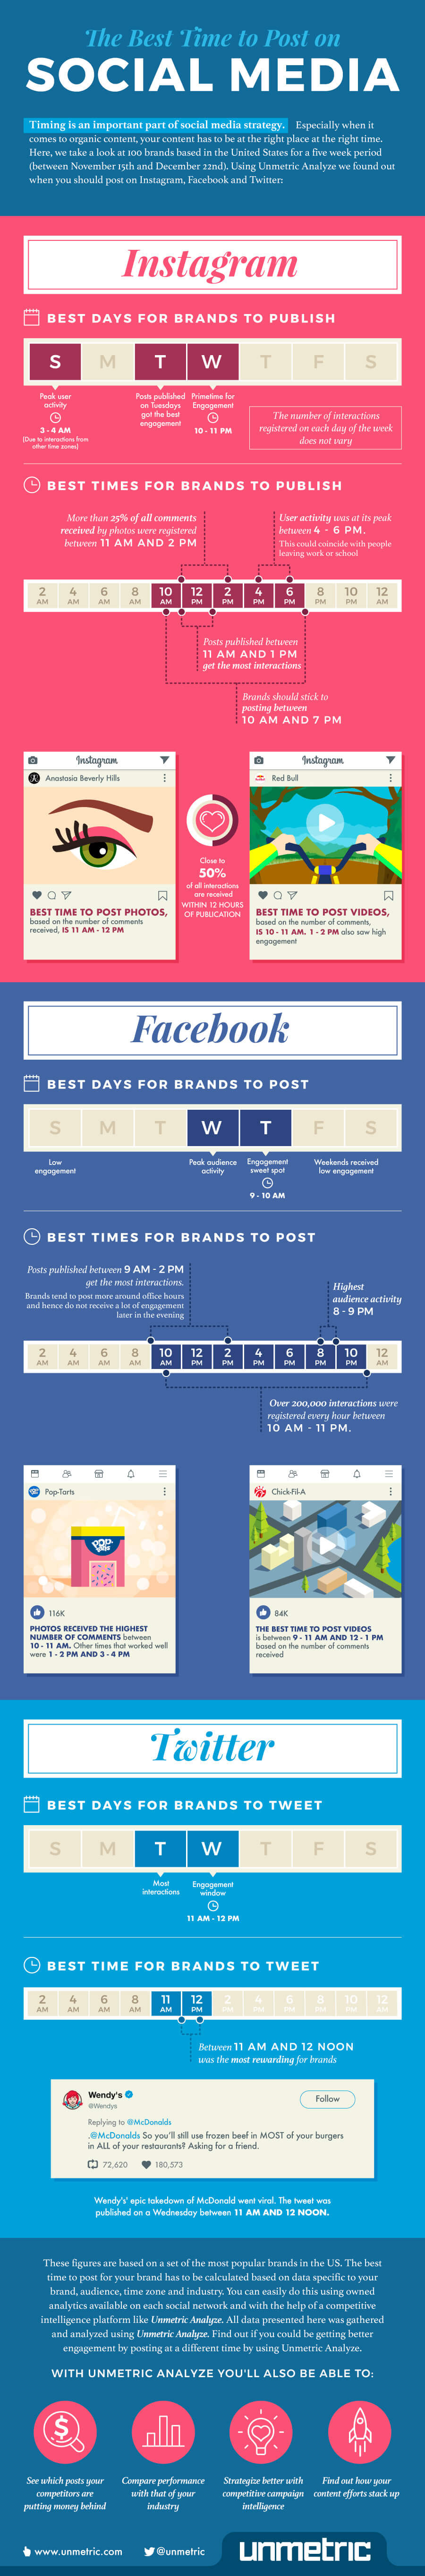 What's the best time to post on social media? Timing is key to maximize social media reach and engagement. Determine your best times with this infographic!